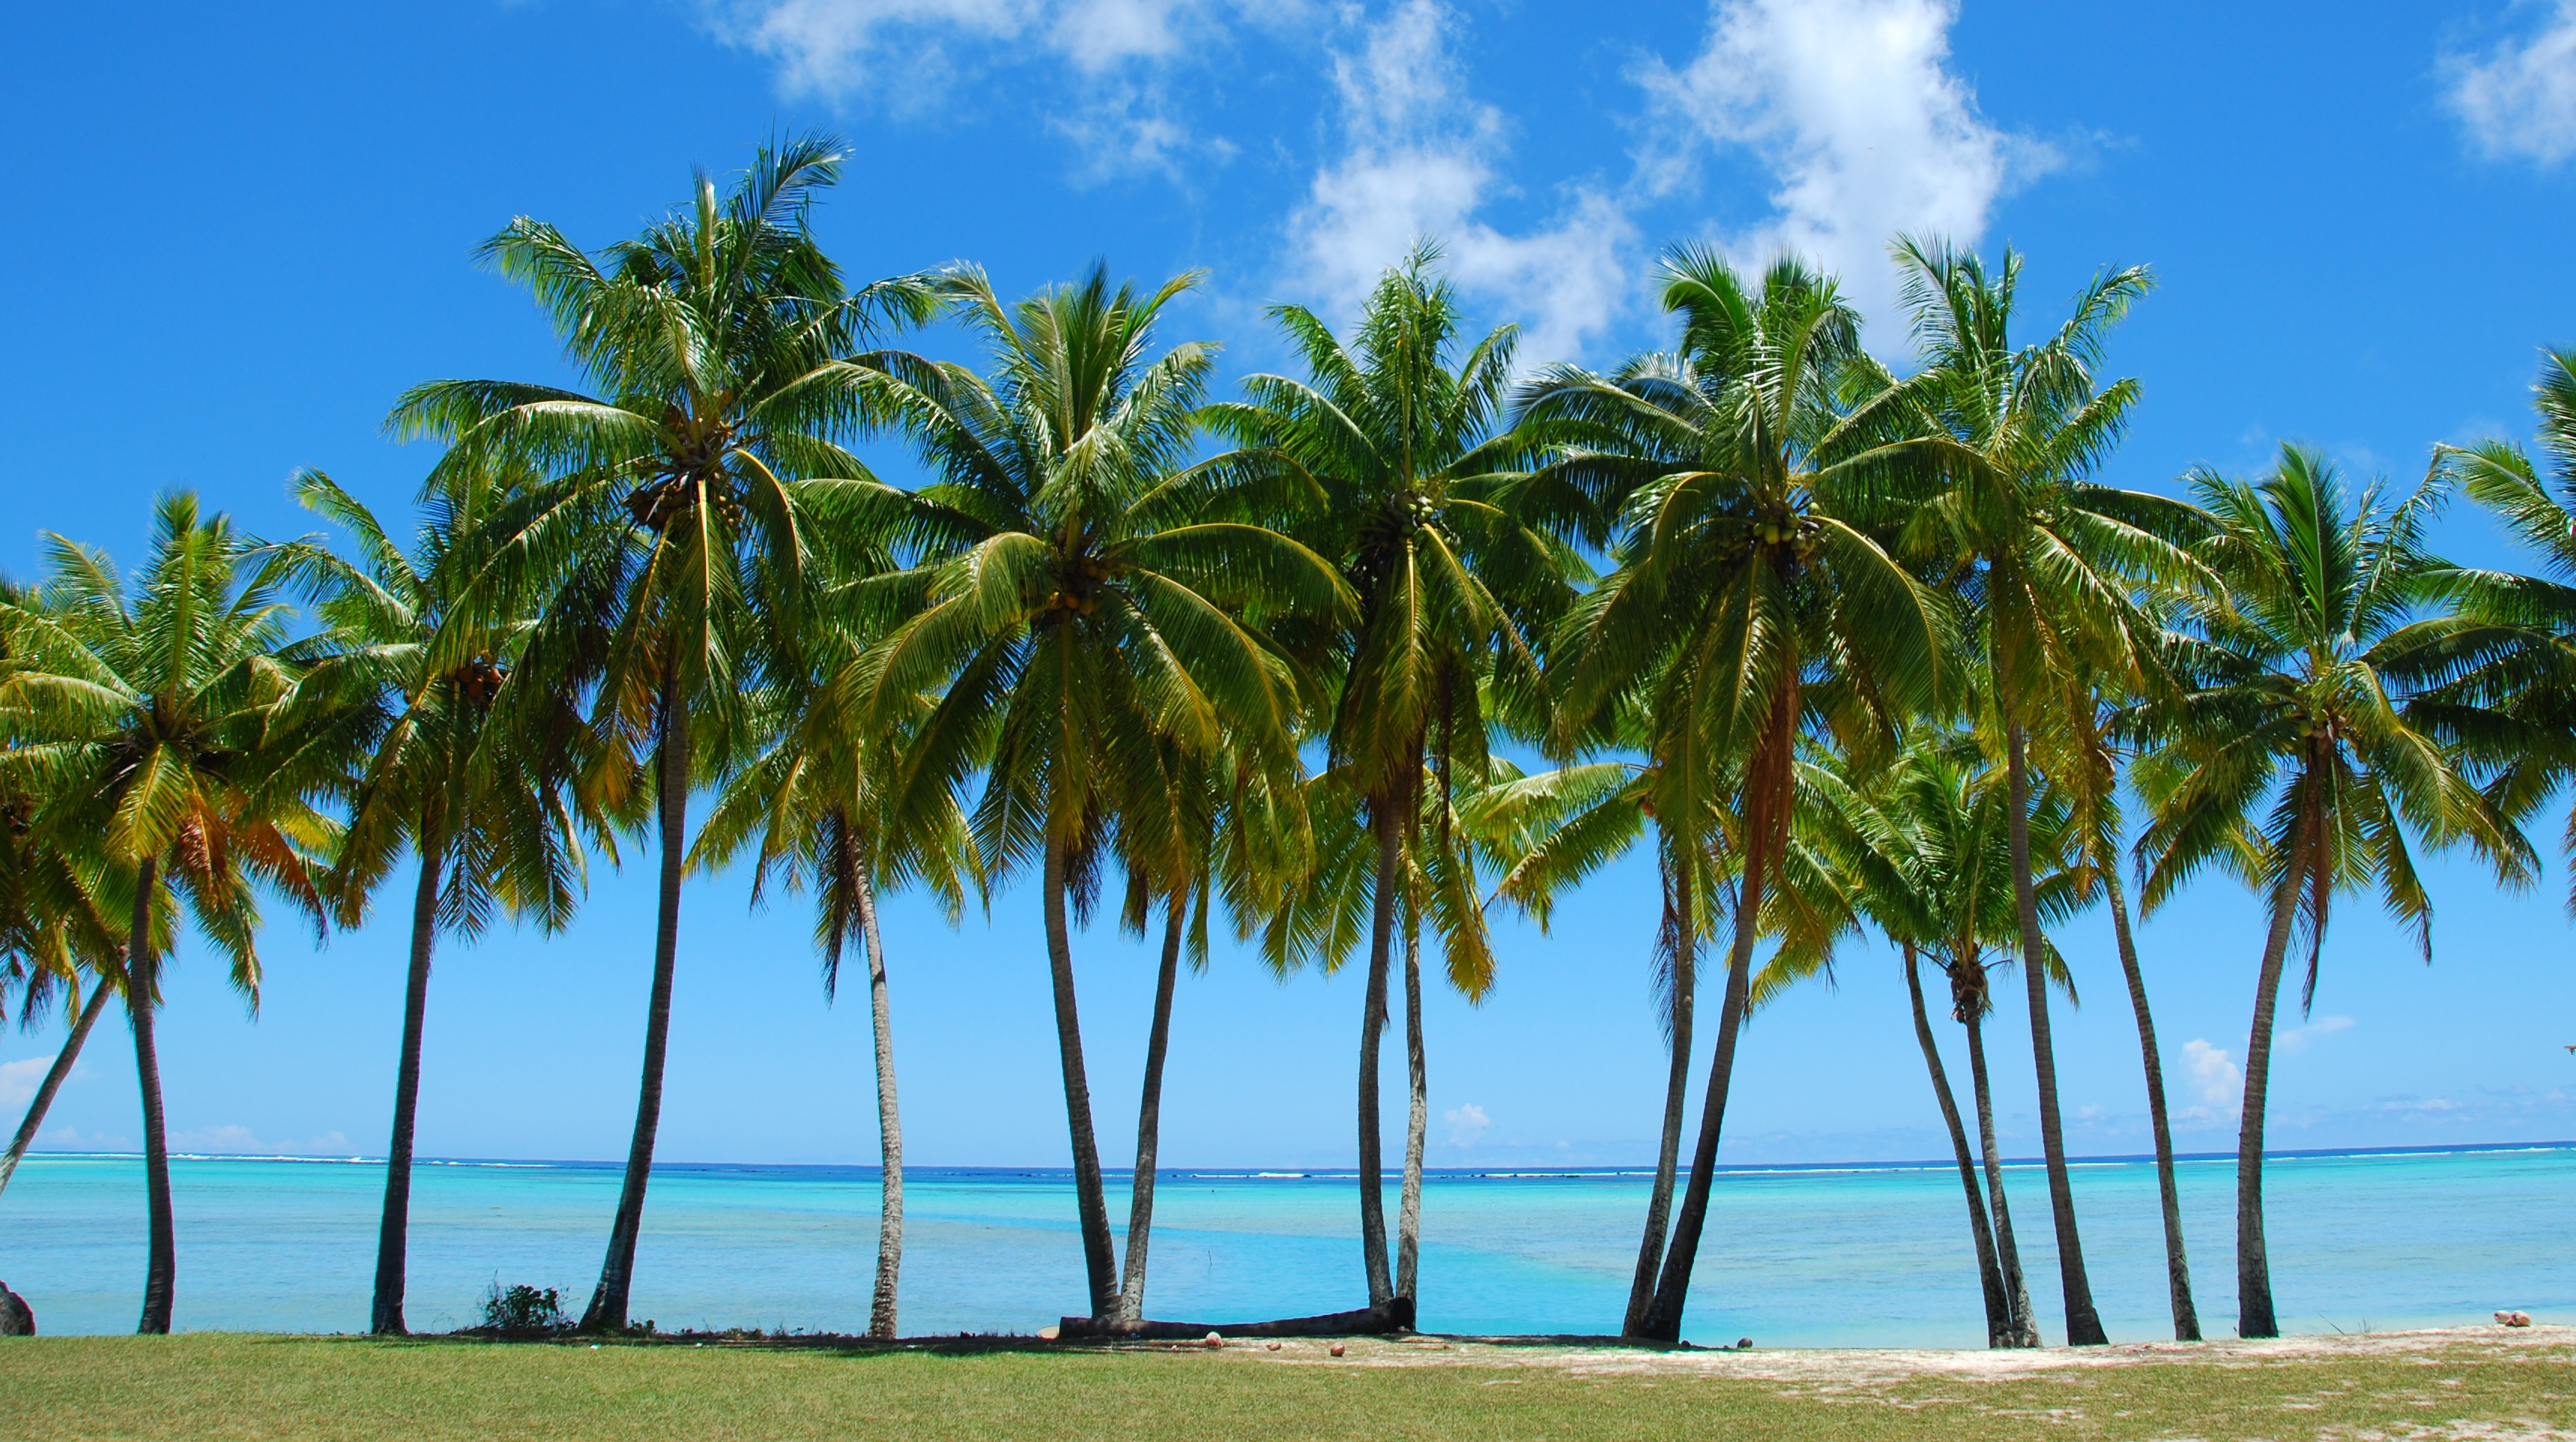 Palms and other tropical plants